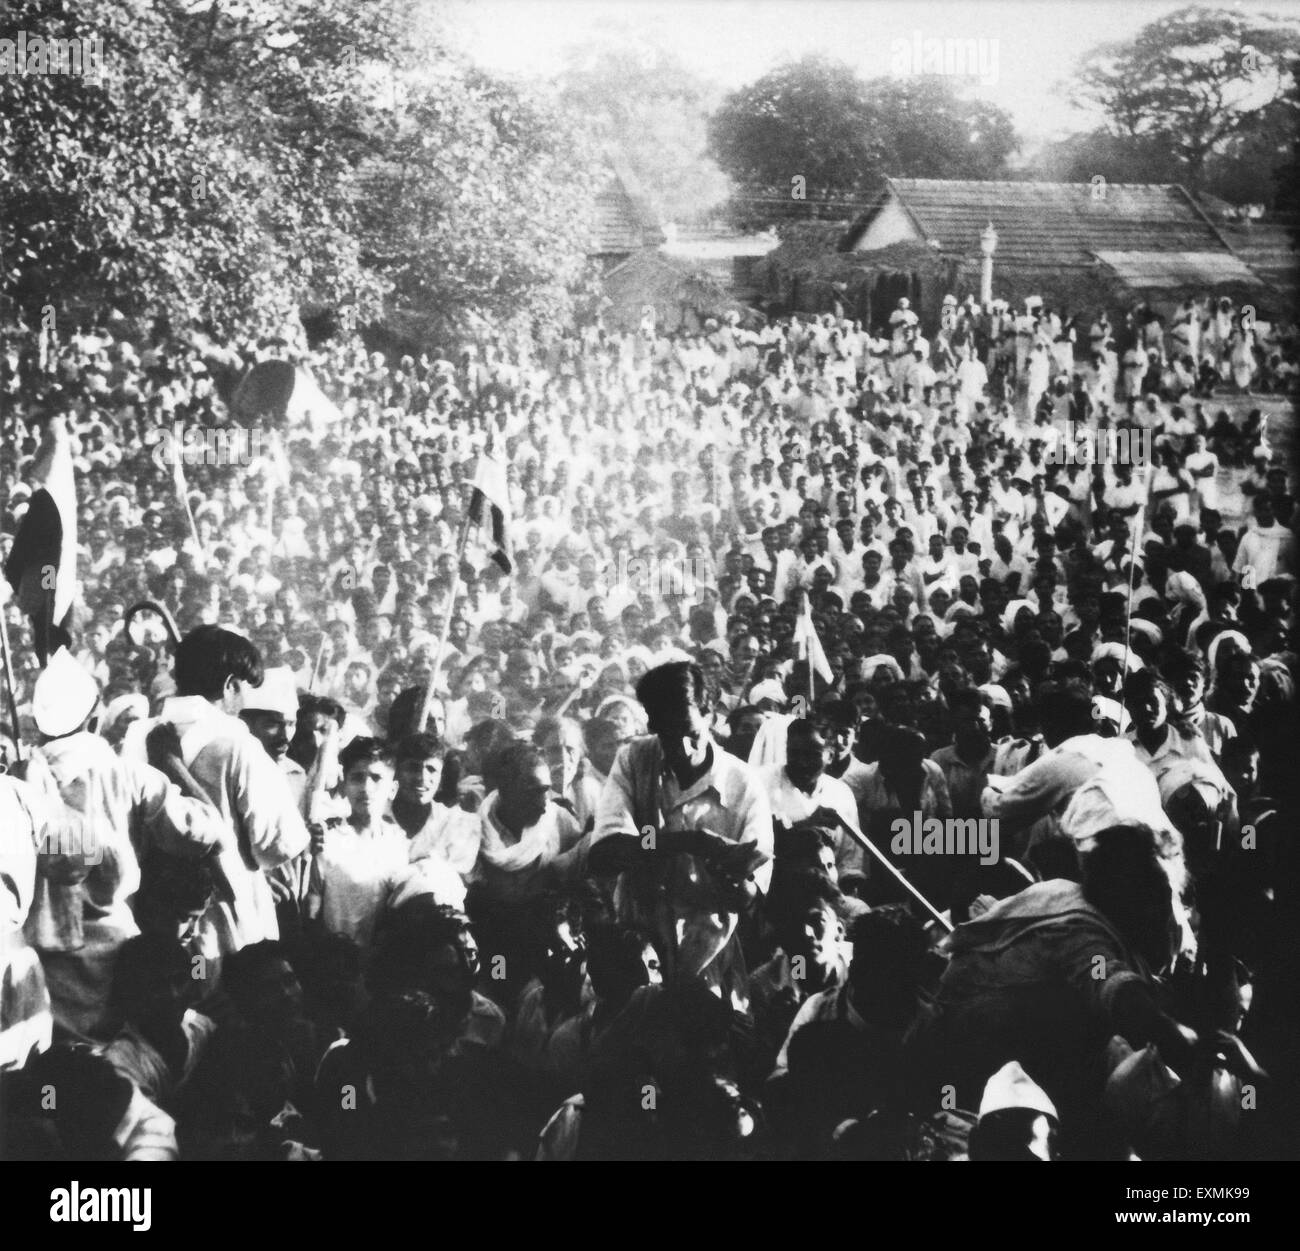 Crowds in the riot stricken area of Noakhali East Bengal ; November 1946 ; India NO MR - Stock Image